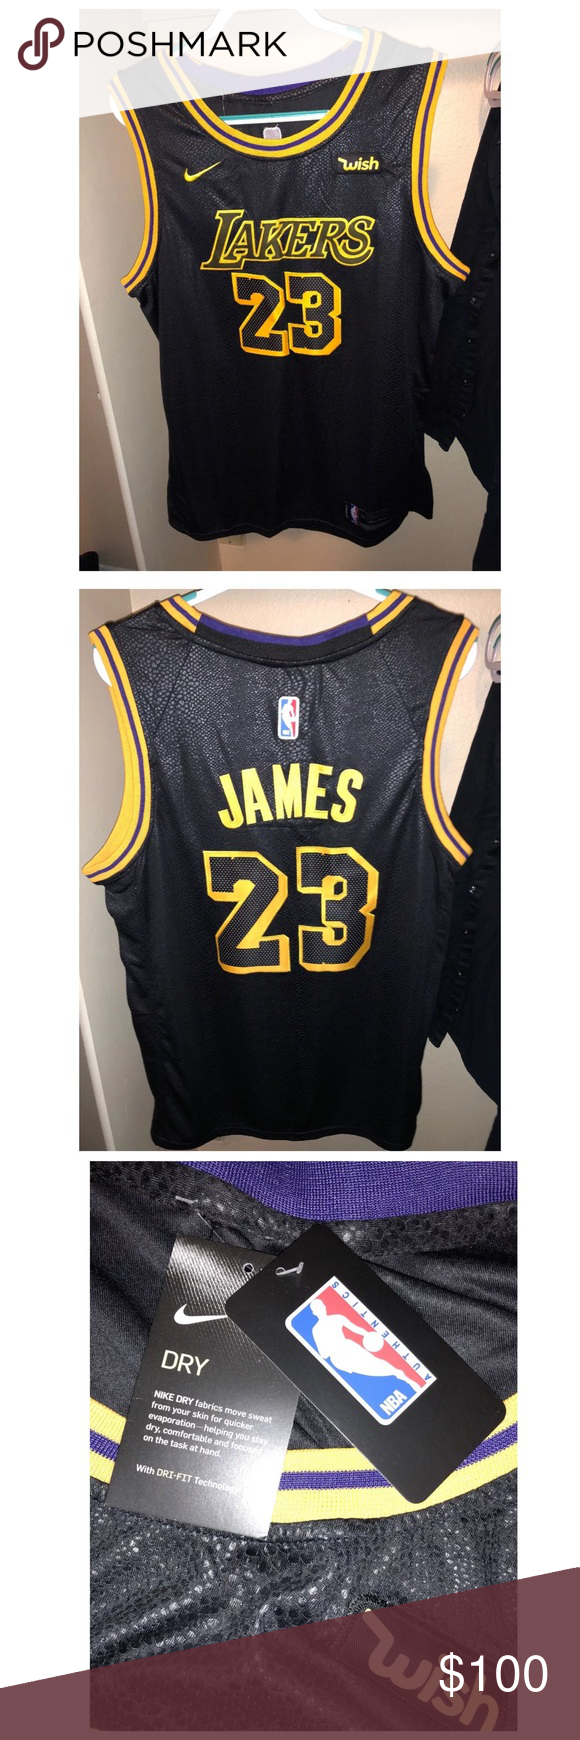 best sneakers 90e48 0d5a7 greece lebron james short sleeve jersey 9cf72 a891c